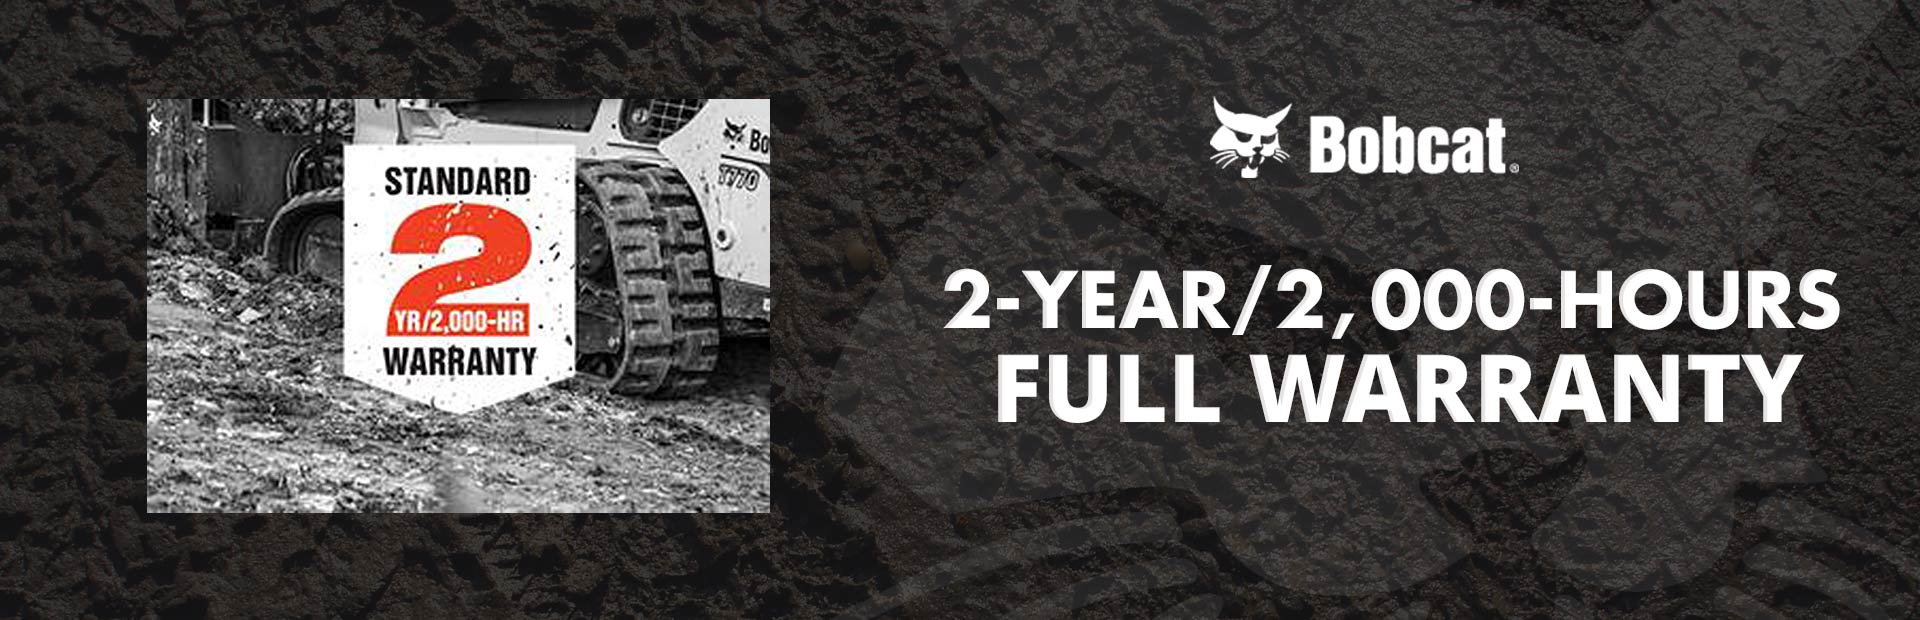 Bobcat - 2 Year/2,000 Hours Full Warranty Whipp Sales & Service, Inc